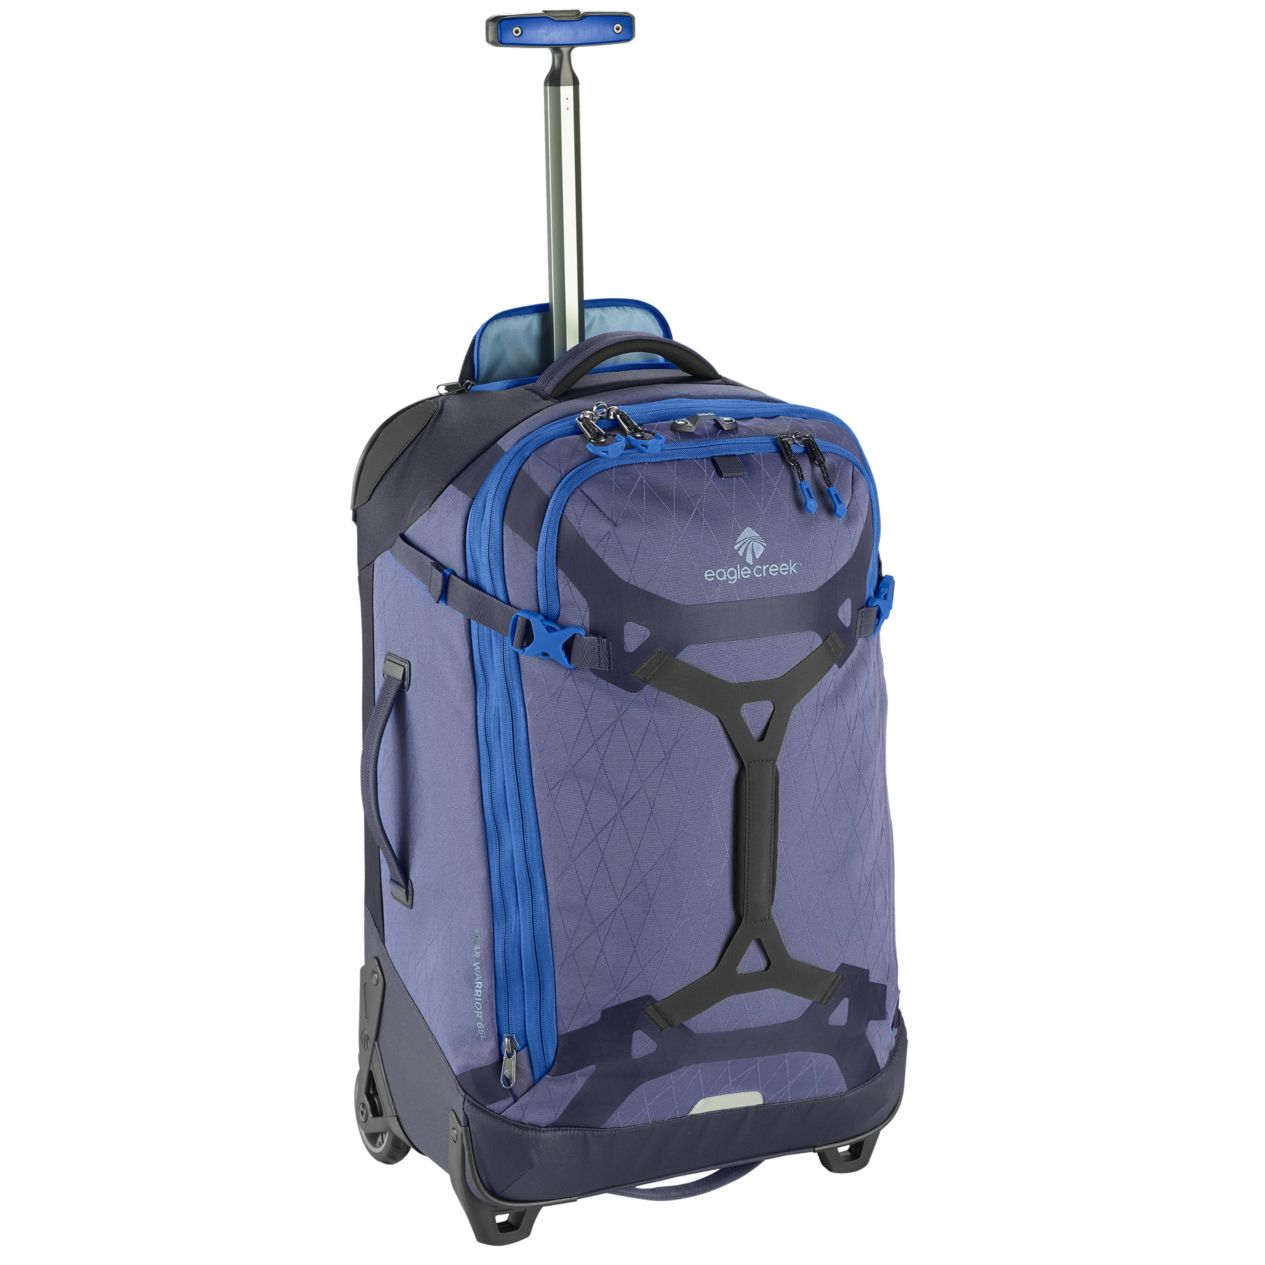 Luggage Buying Guide  How to Choose a Travel Bag 91ad027df3